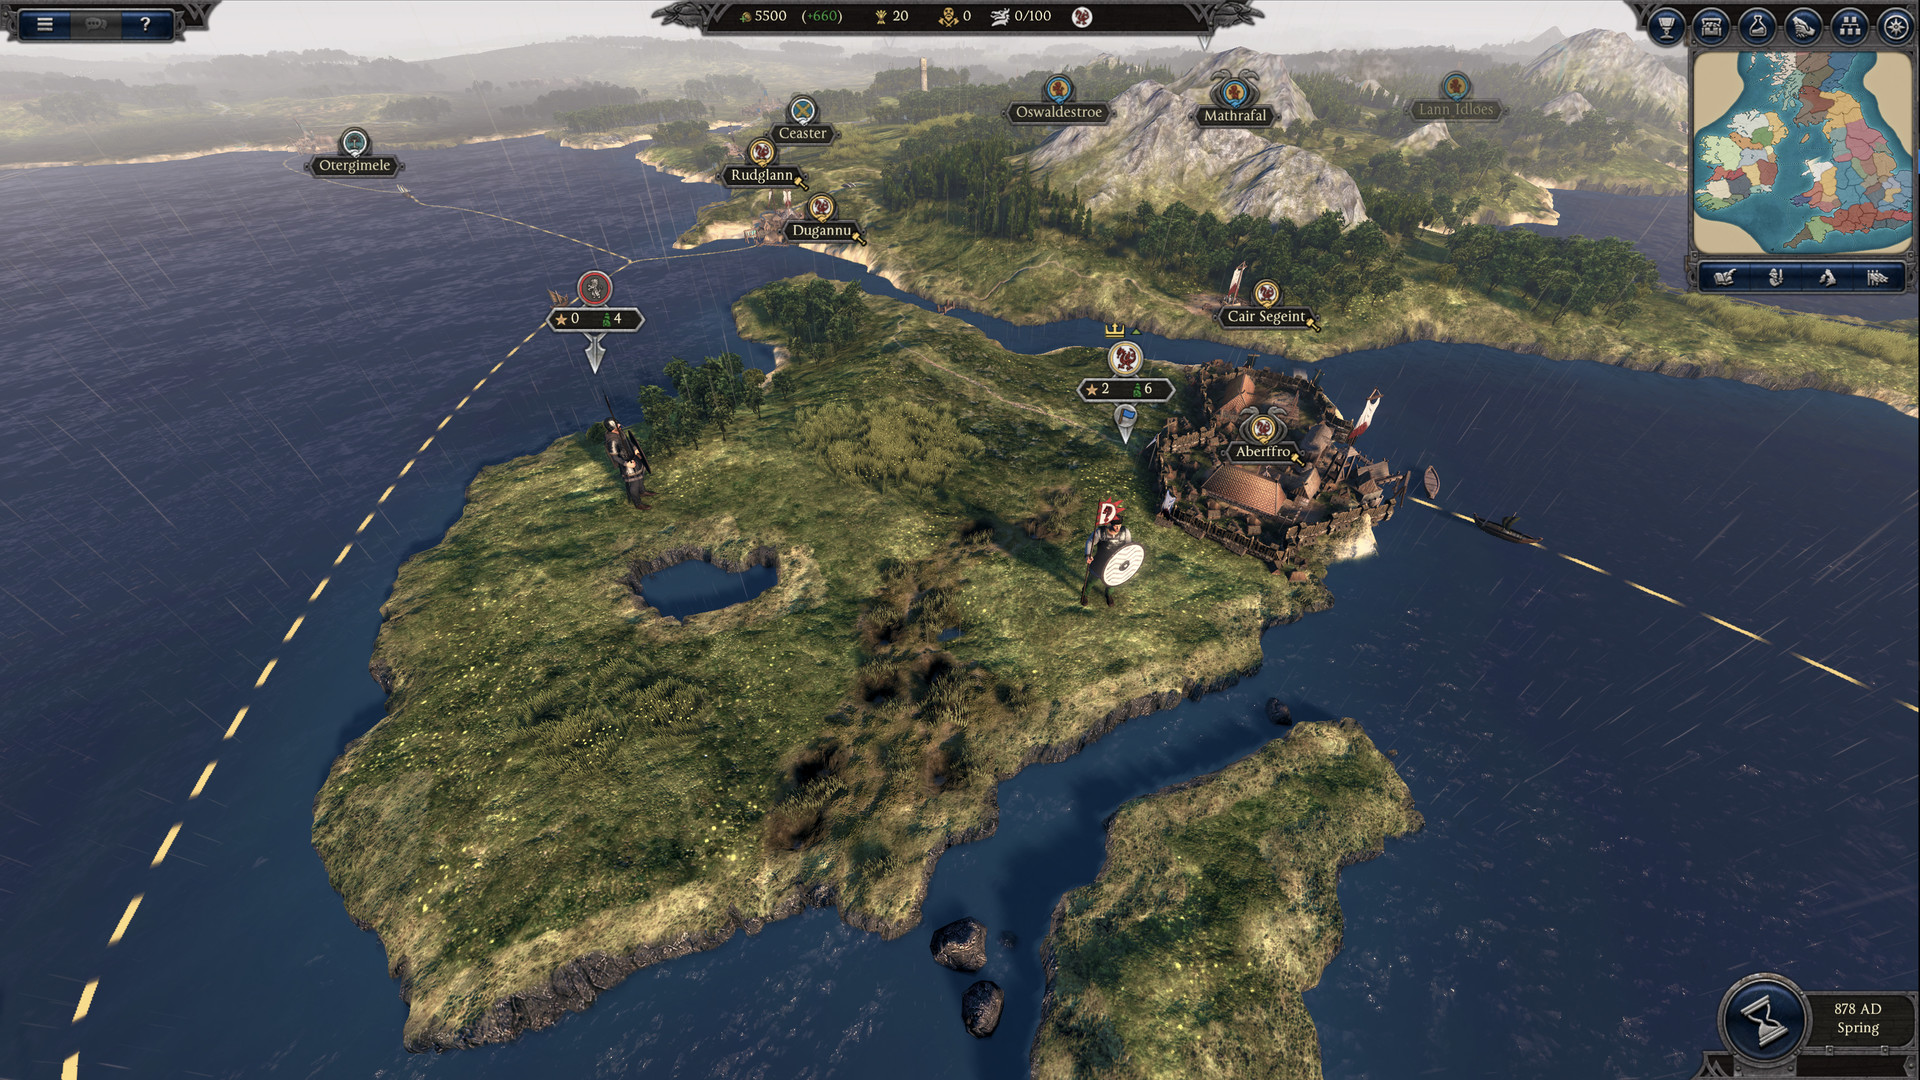 Total War Saga: Thrones of Britannia (SEGA) (RUS|ENG|Multi13) [SteamRip] vano_next